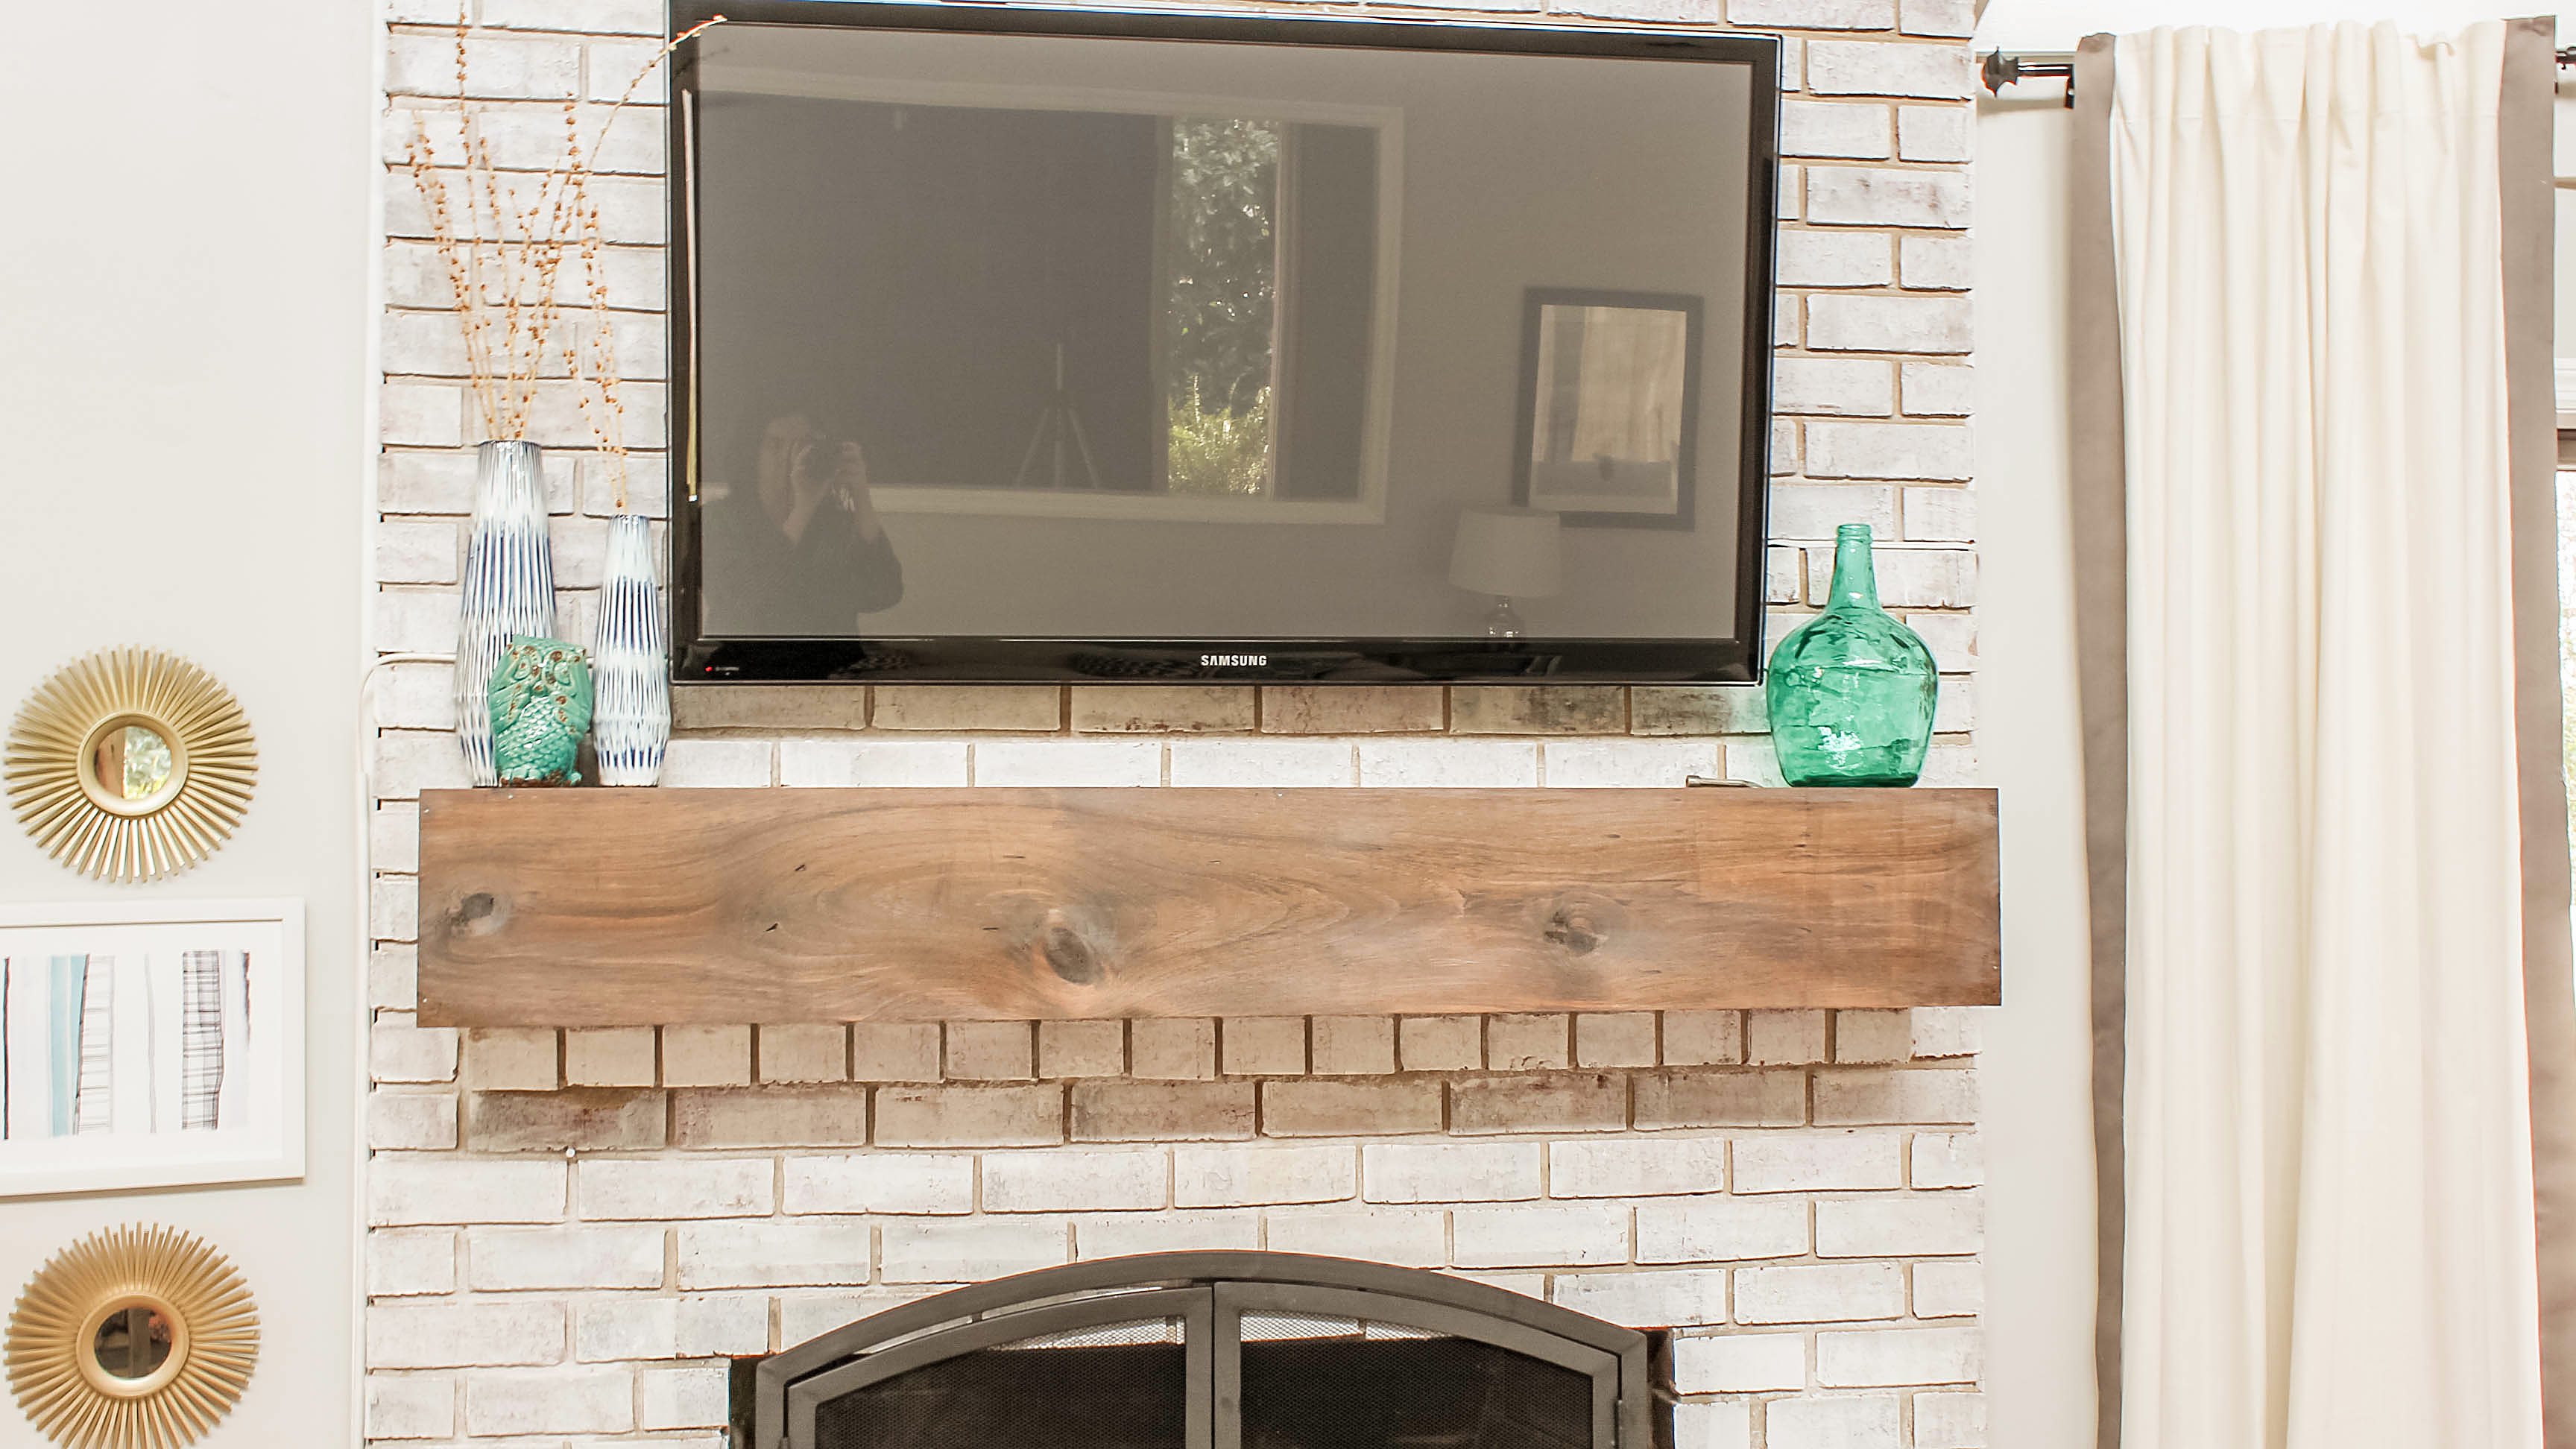 how to mount a tv over a brick fireplace and hide the wires rh designingvibes com hide tv wires brick wall Family Room with TV On Wall Decorating Ideas